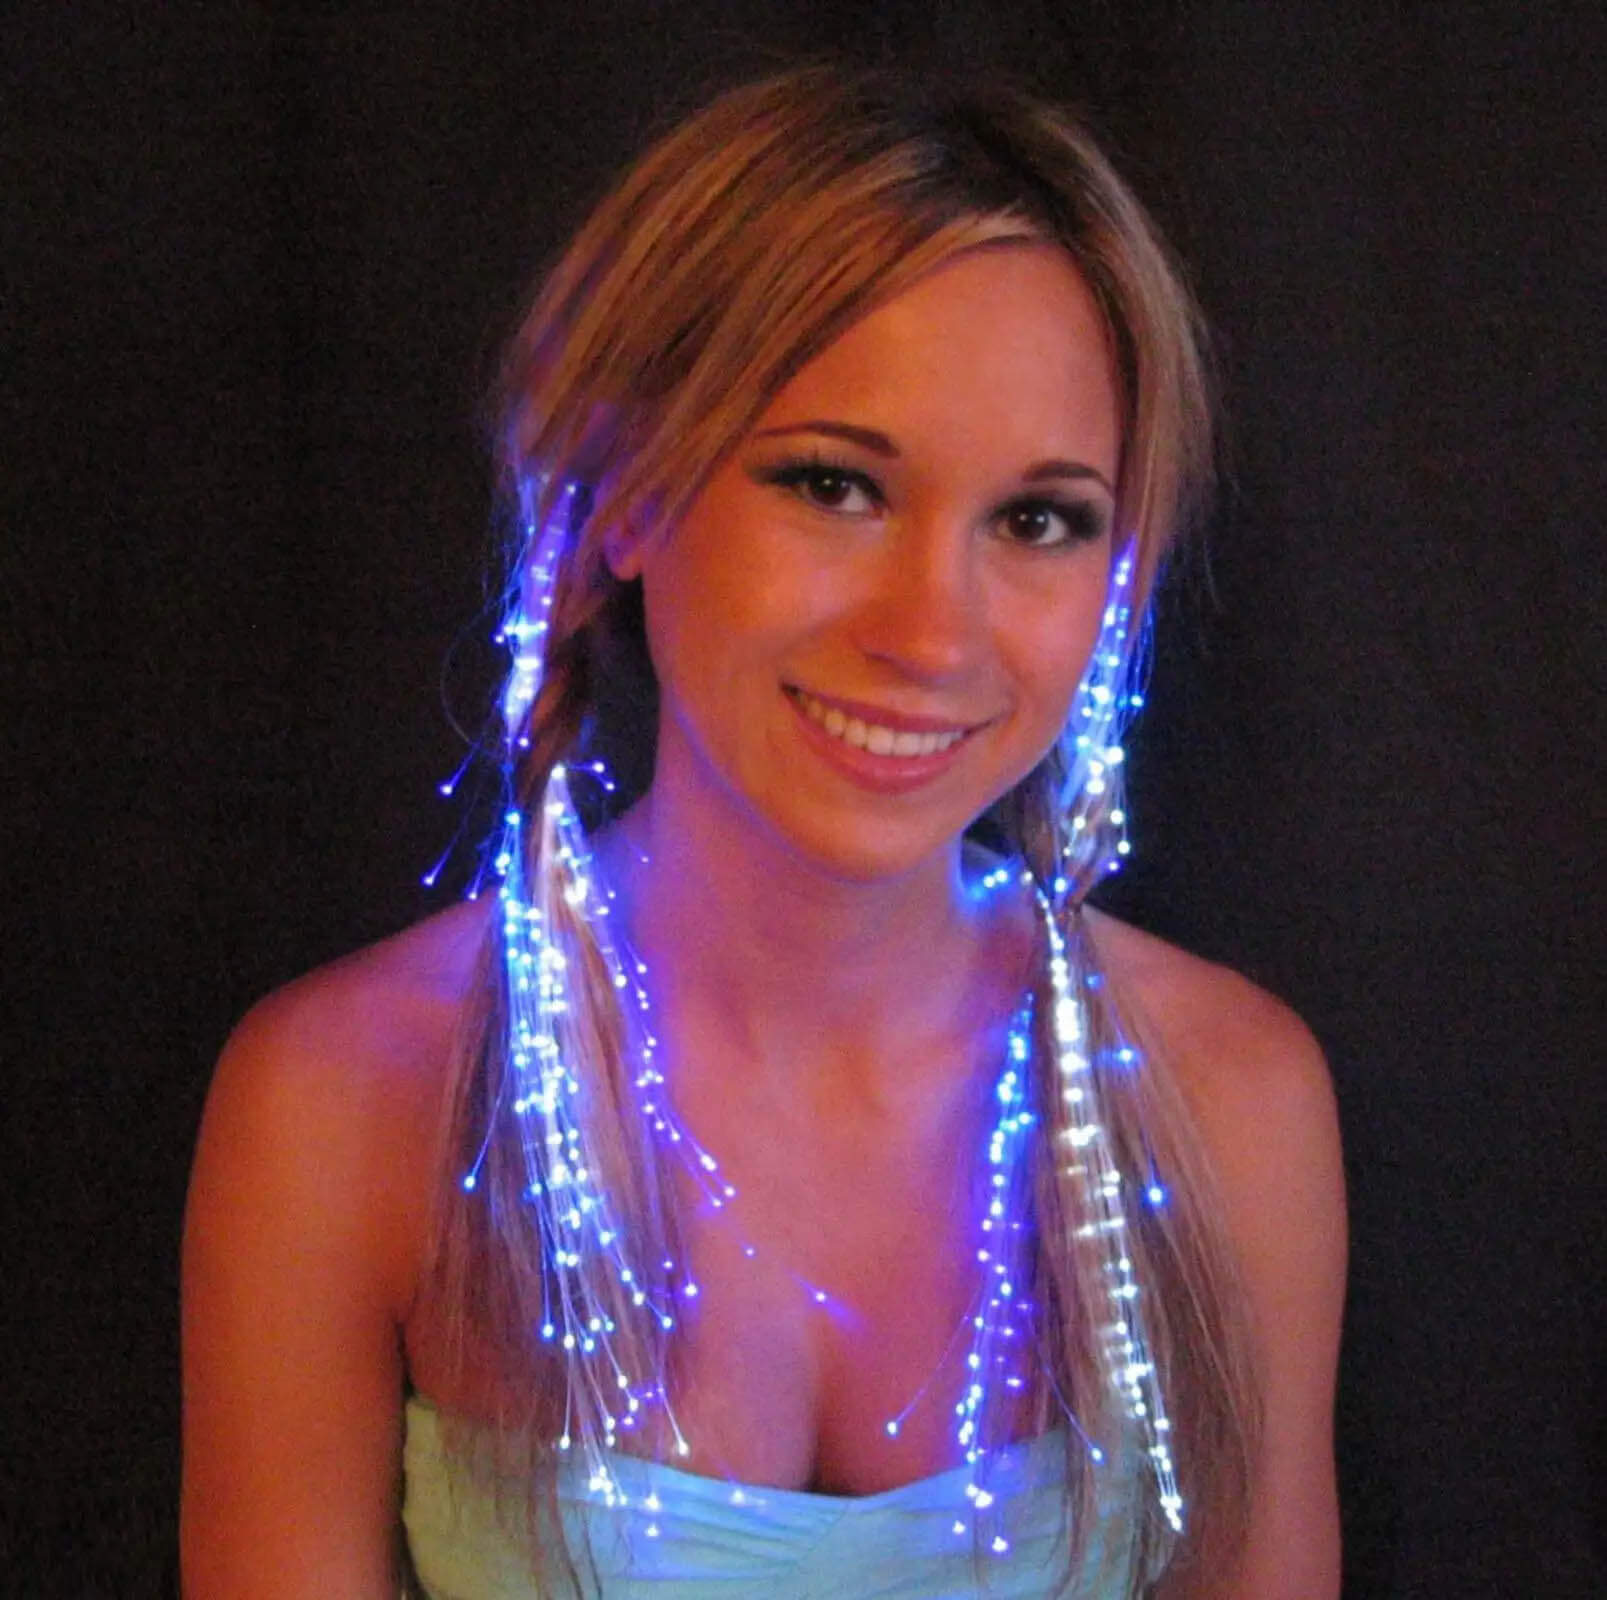 Fairy lights hairstyle